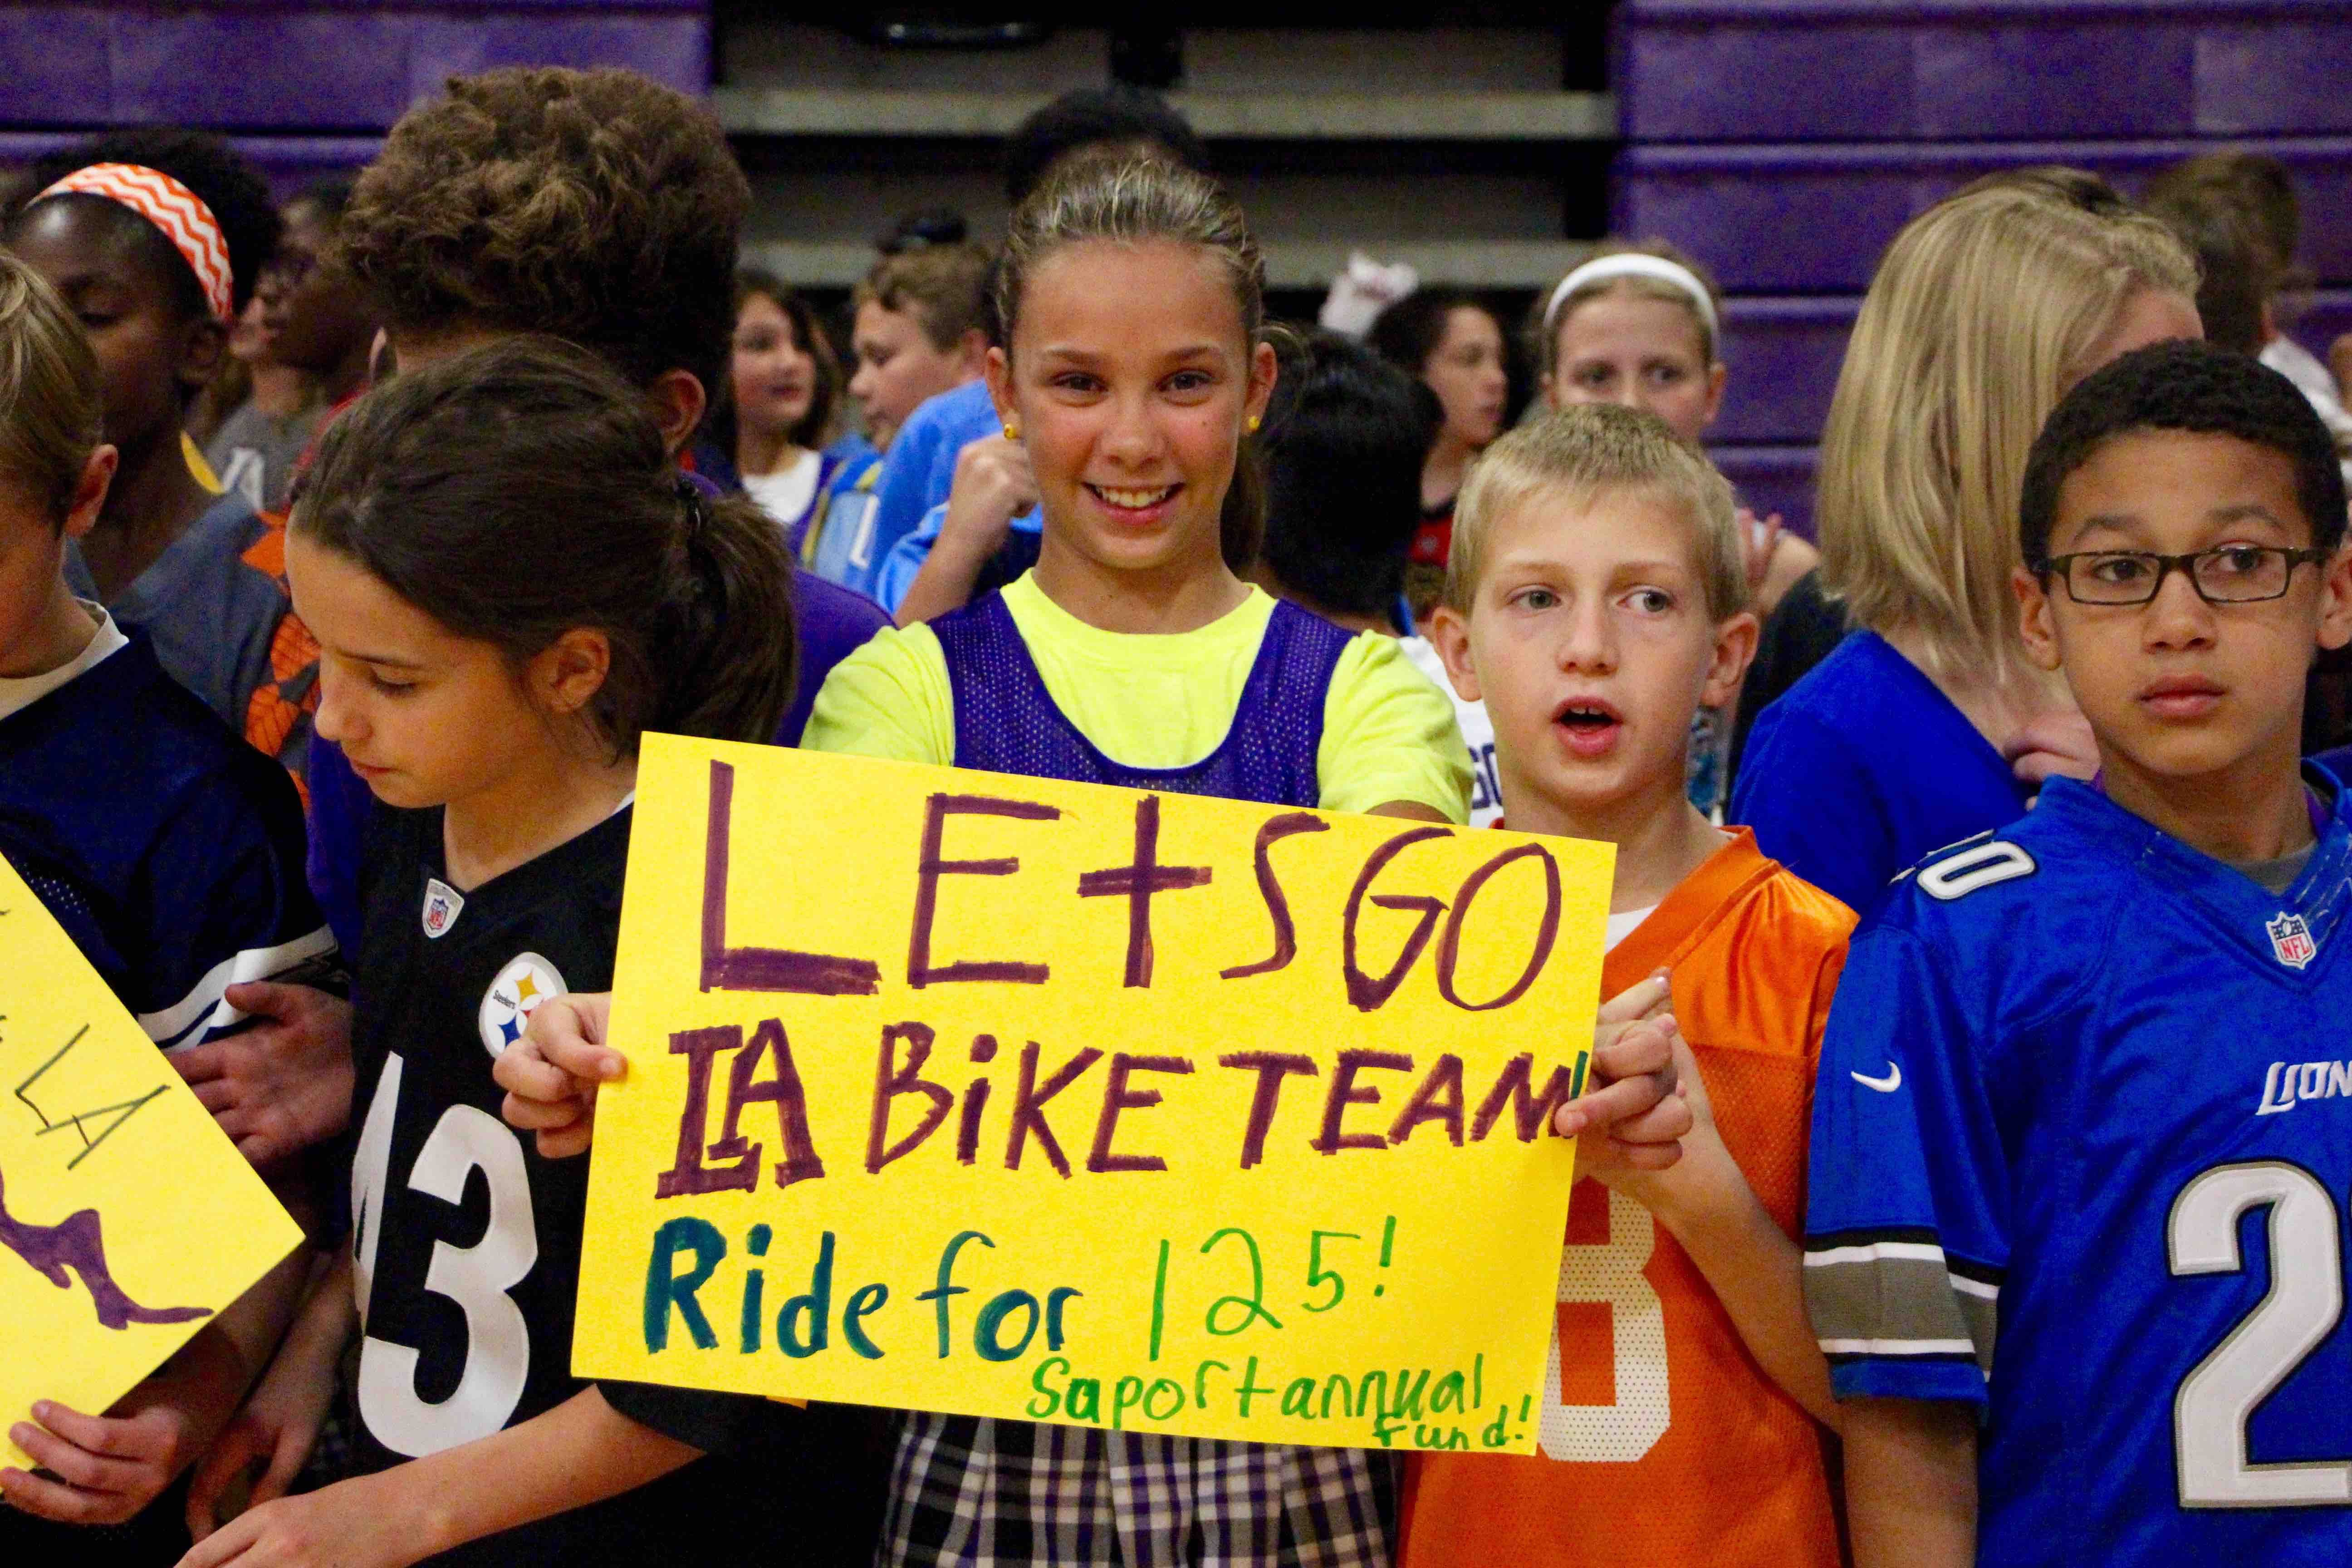 Students prepare to send off Ritchie Pickens and his team for their Ride for 125 to support the Annual Fund!